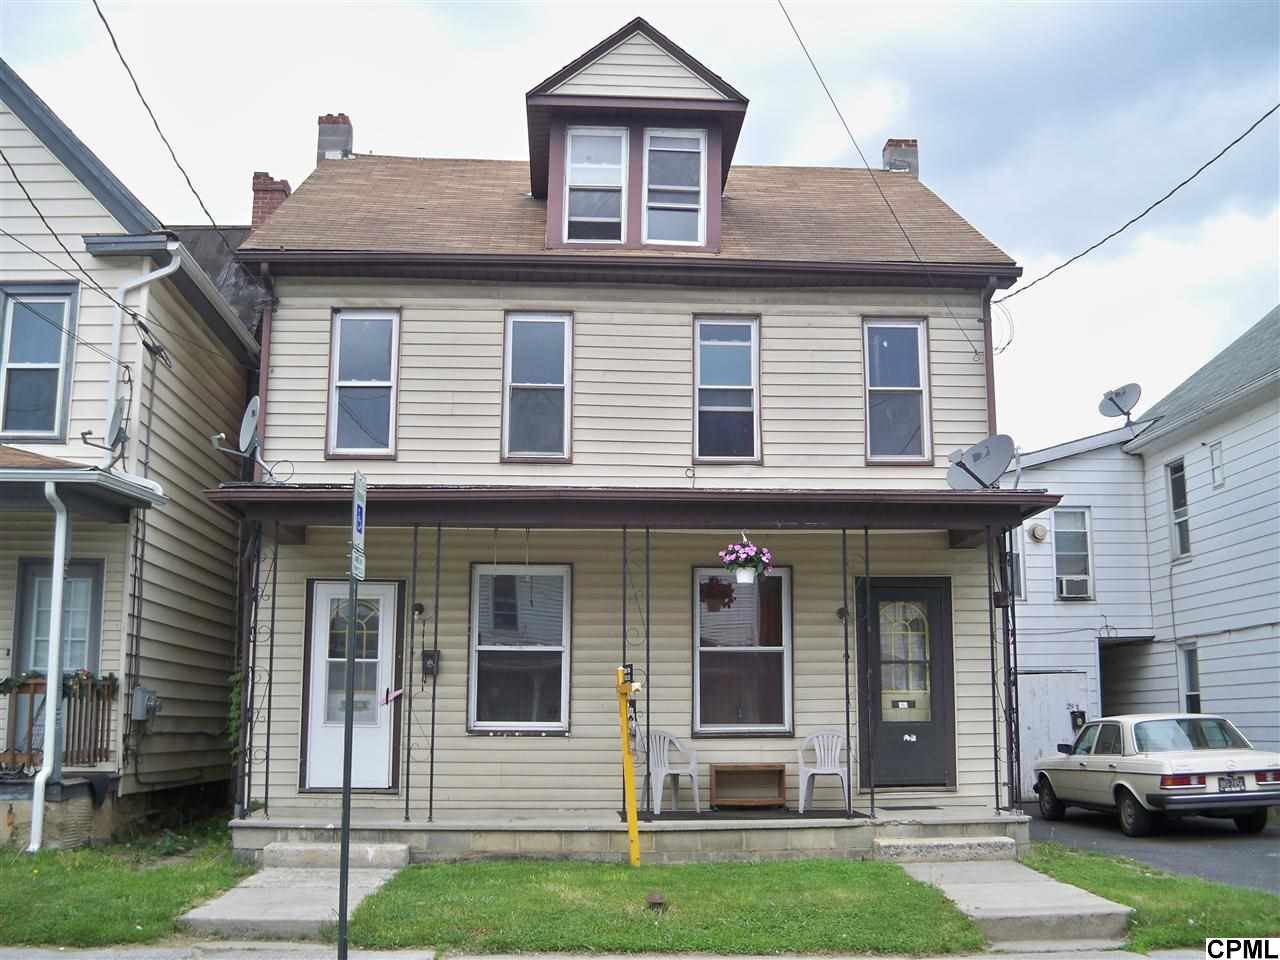 25-27 Feeder Avenue, Lewistown, PA 17044